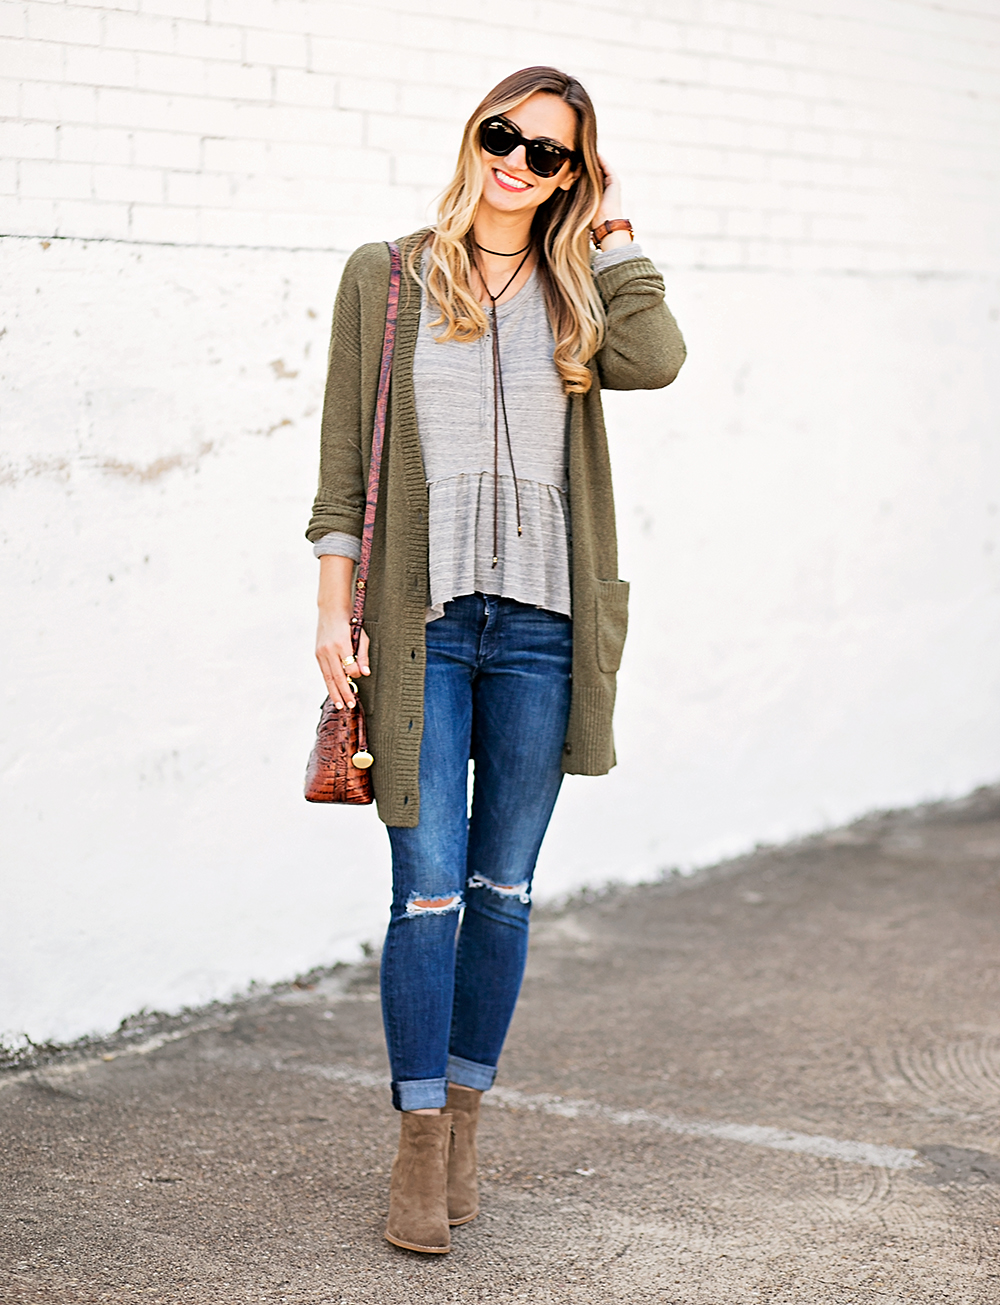 livvyland-blog-olivia-watson-peplum-thermal-tee-shirt-olive-cardigan-boho-outfit-casual-taupe-ankle-booties-fall-outfit-idea-celine-baby-marta-sunglasses-2